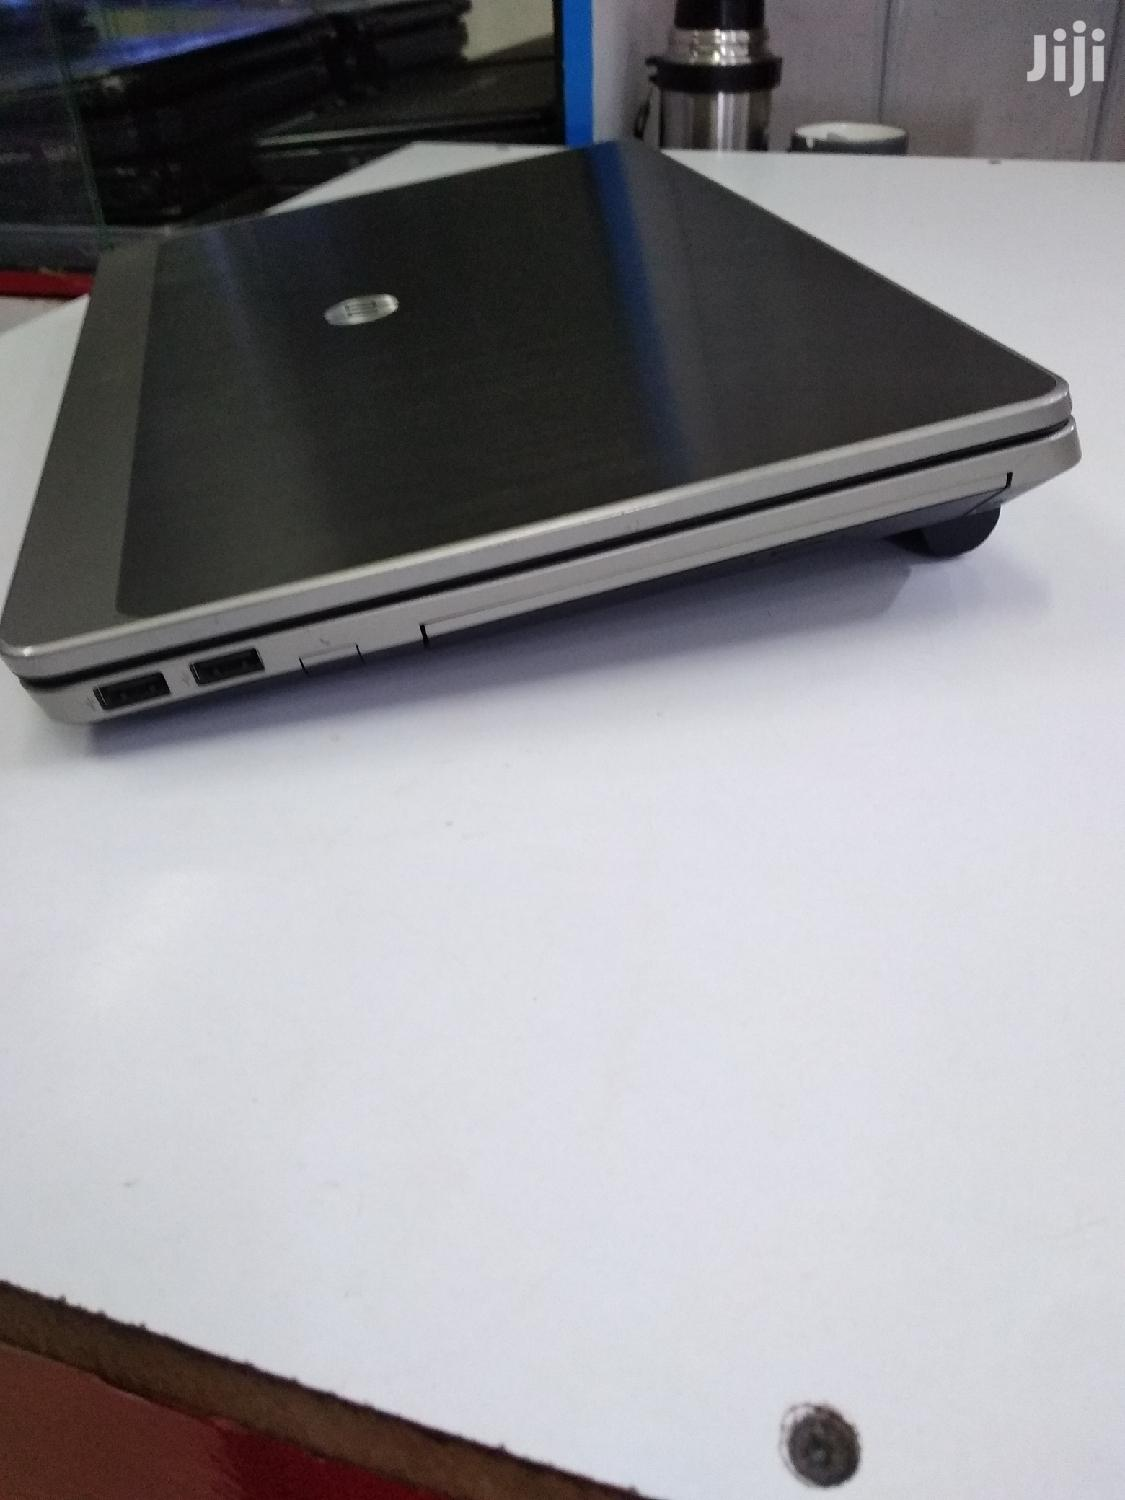 Laptop HP ProBook 4430S 4GB Intel Core i3 HDD 500GB | Laptops & Computers for sale in Kampala, Central Region, Uganda